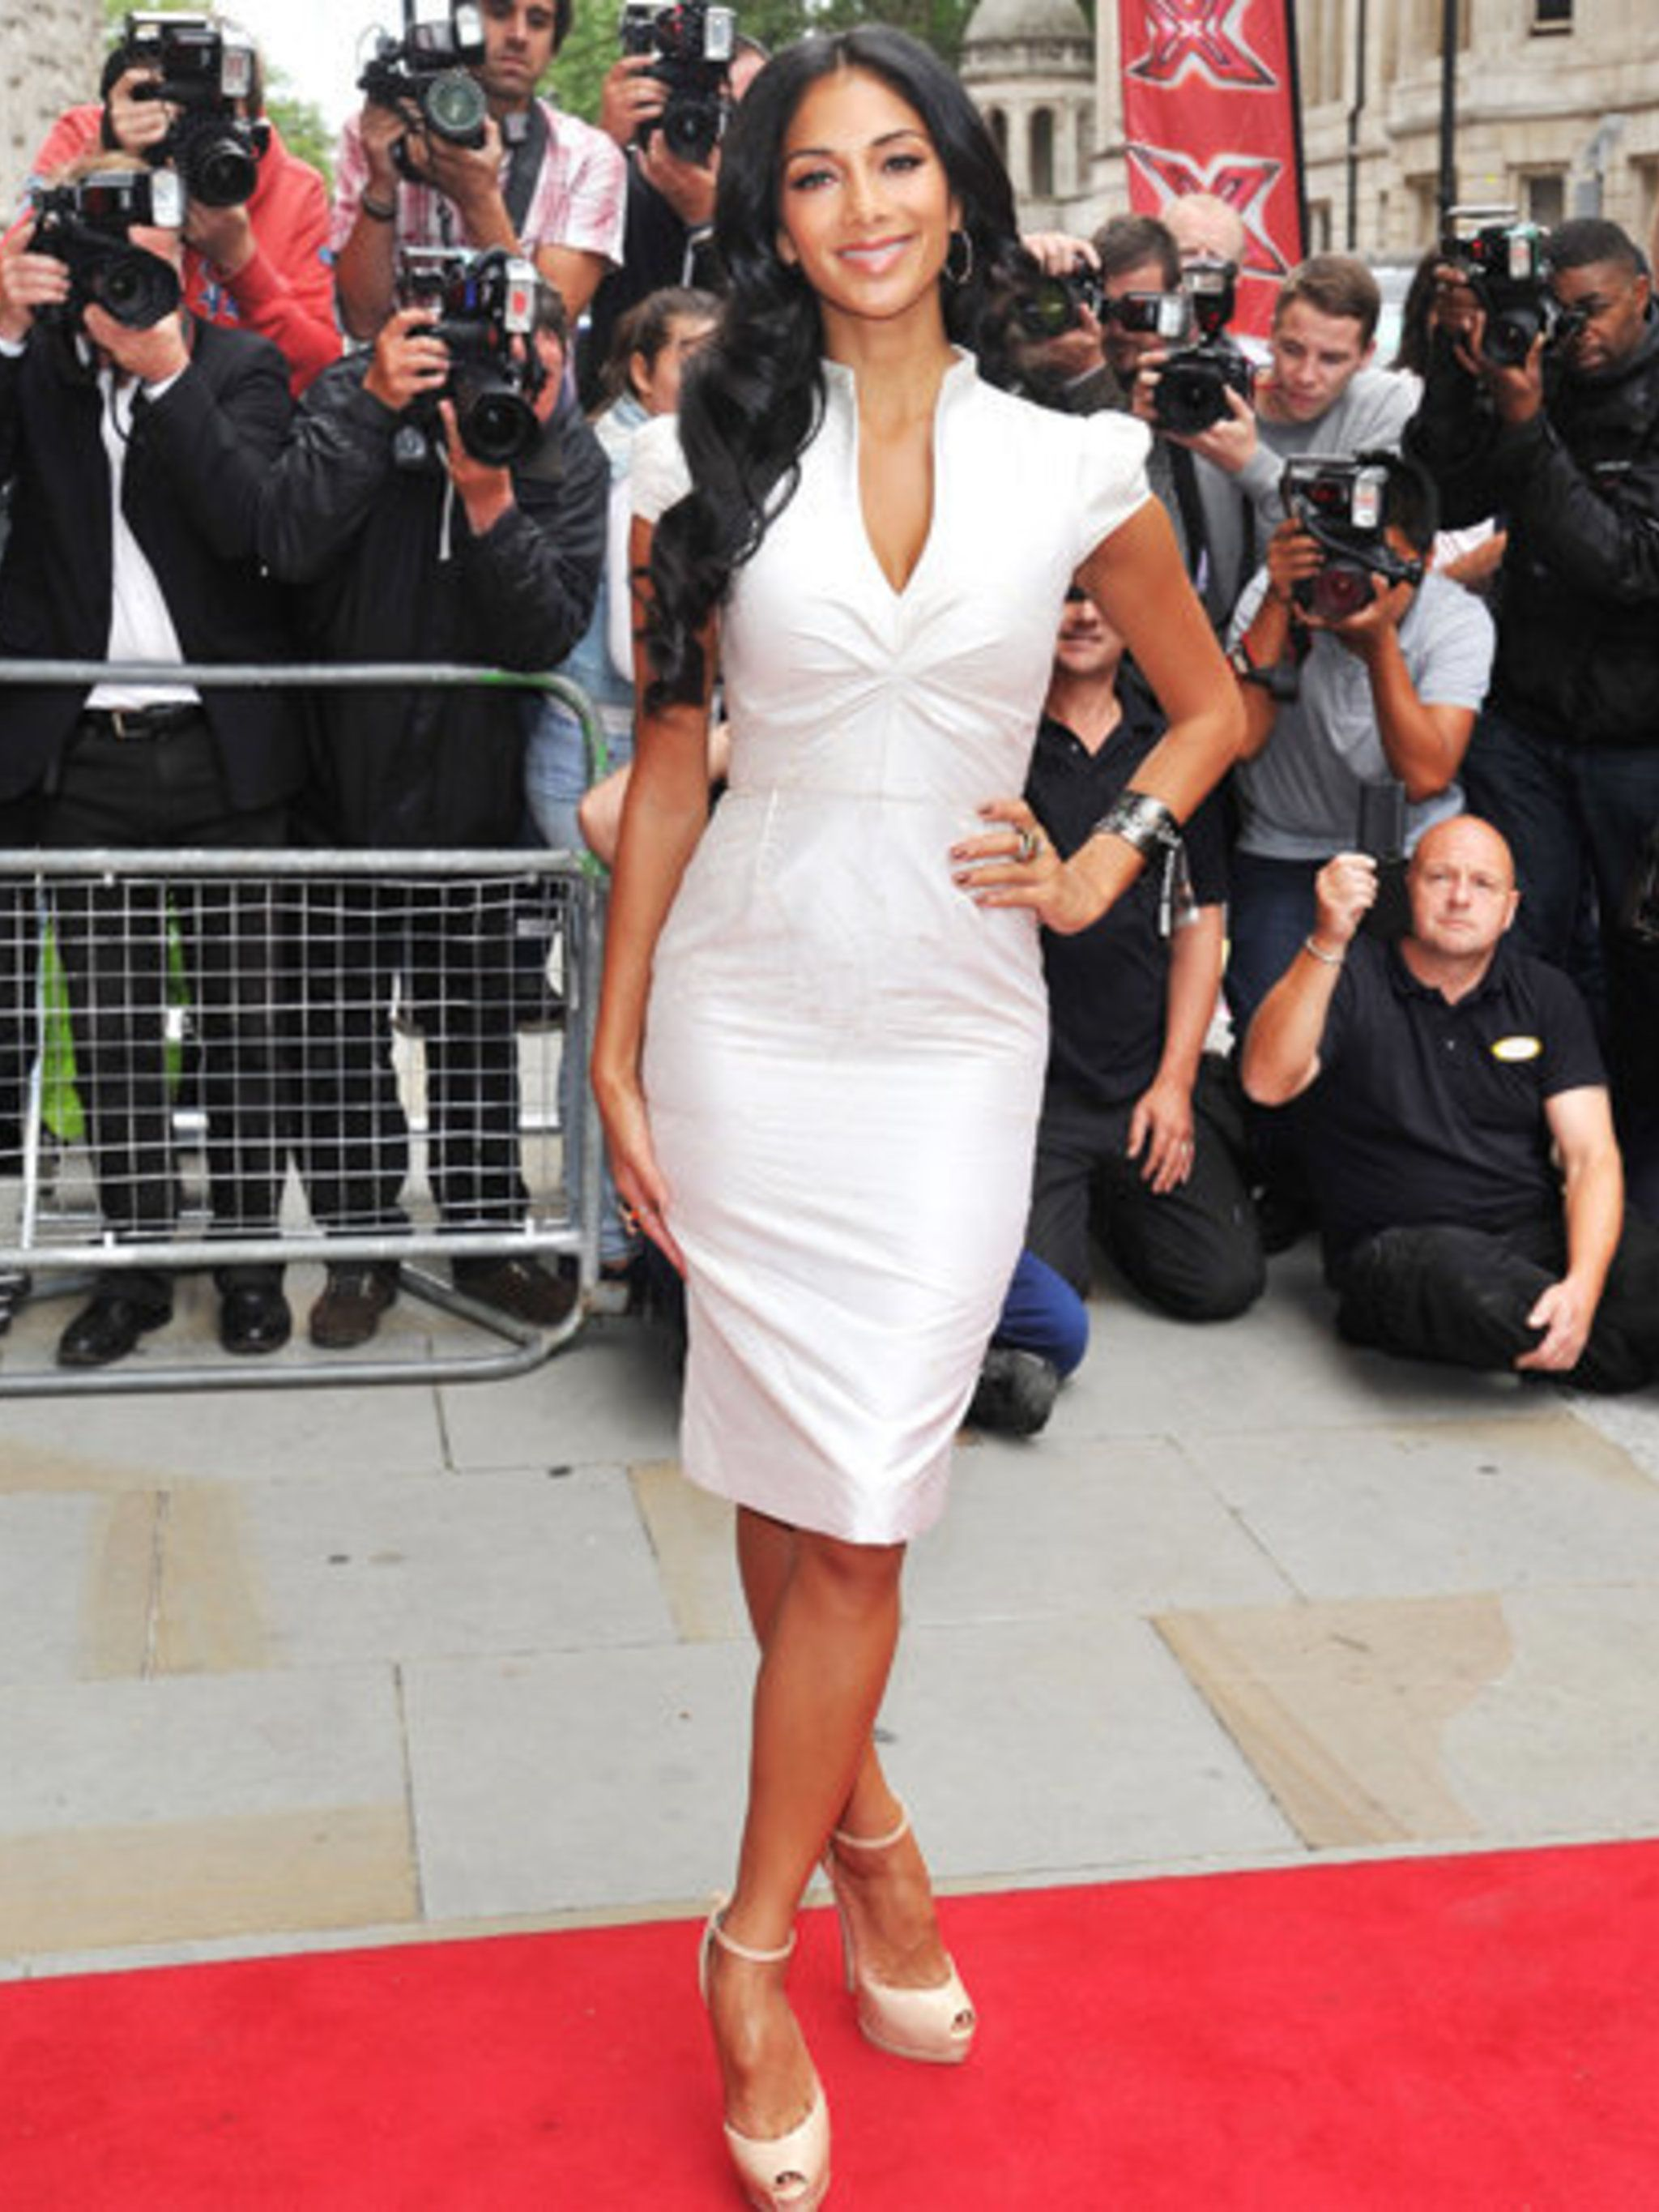 <p>Nicole Scherzinger attends the official press launch of the ninth season of The X Factor UK</p>